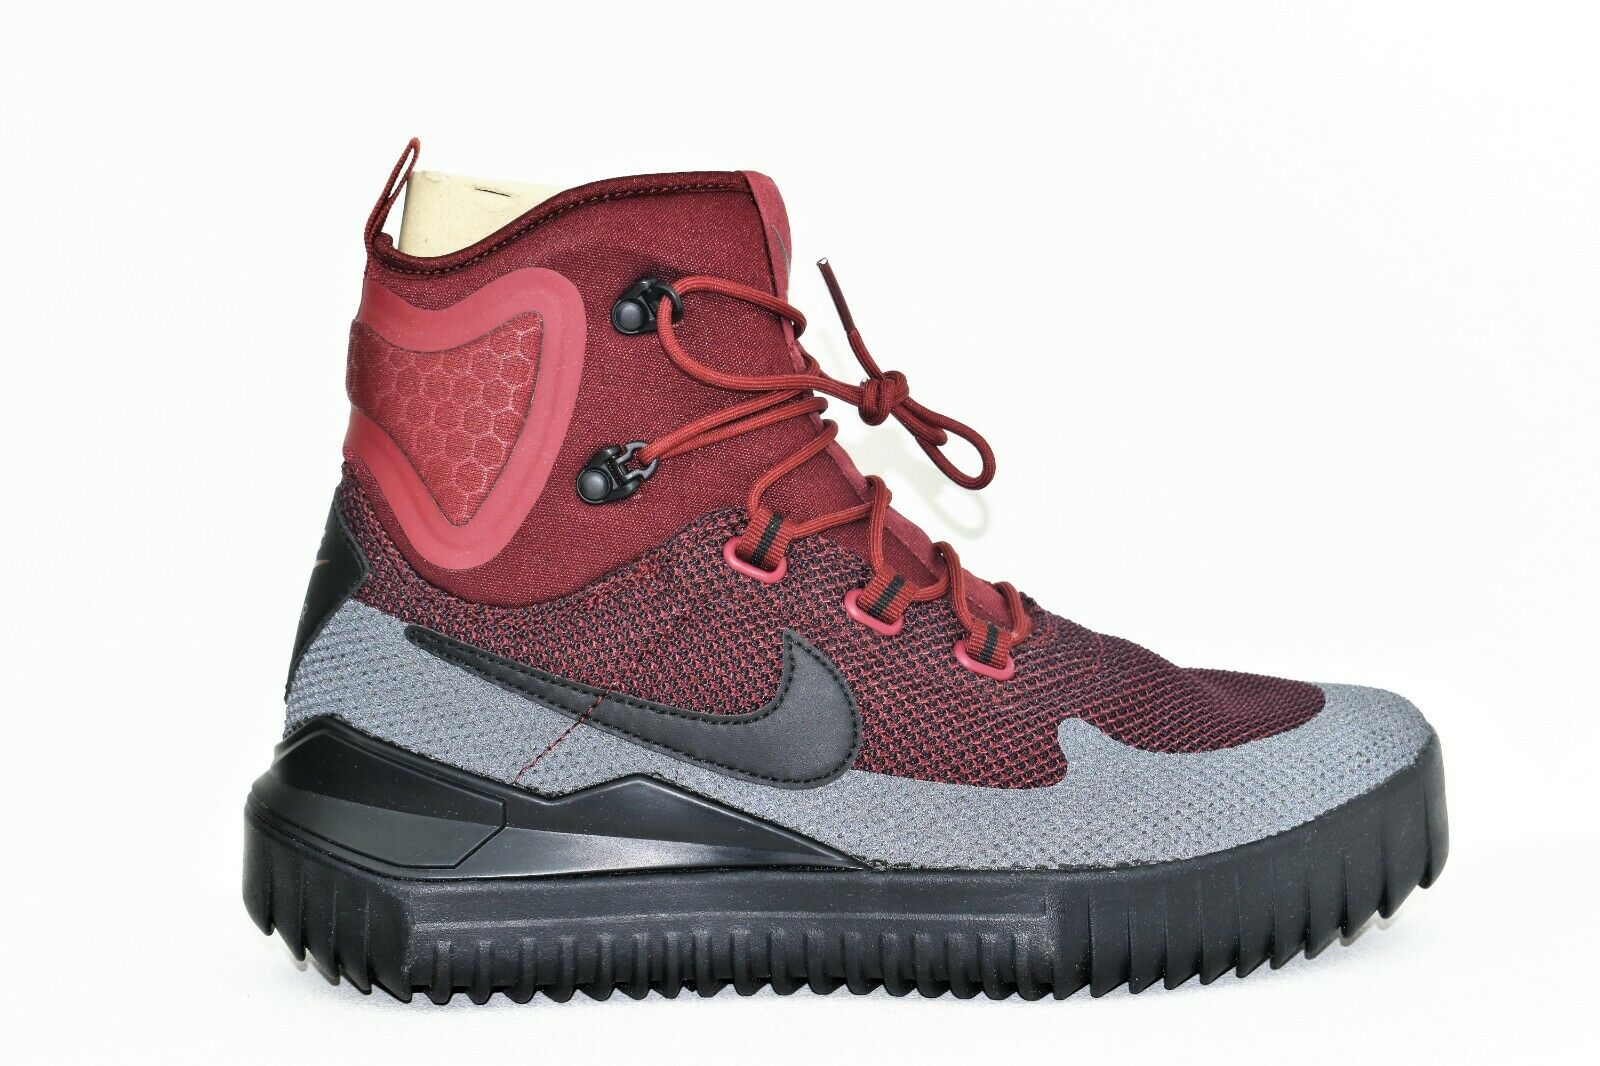 New Nike Air Wild Mid Boots Size 9 Men's Team Red Port Wine Black 916819-600